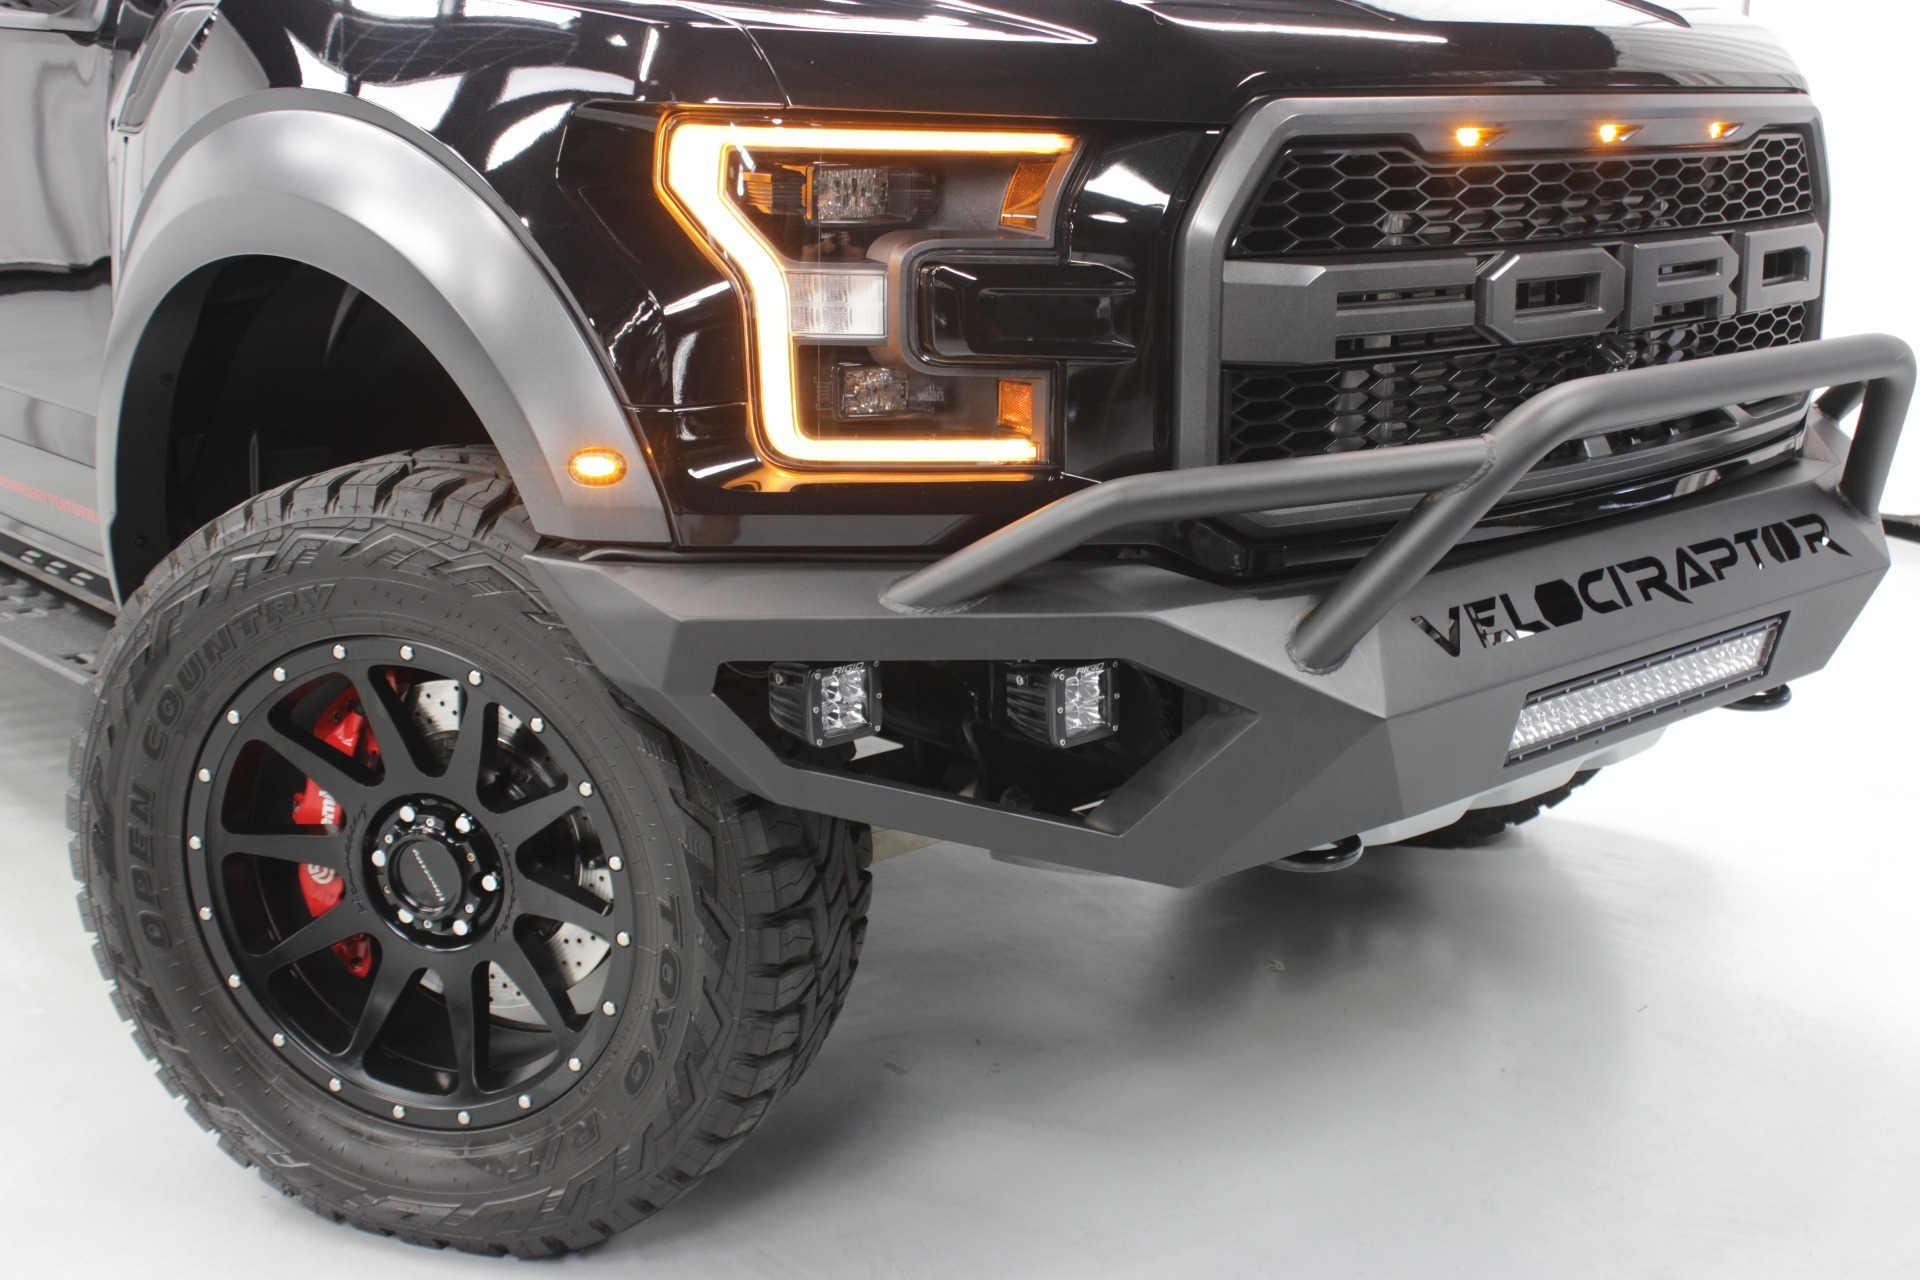 Used 2019 Ford F-150 RAPTOR 4x4 HENNESSY VELOCIRAPTOR VR600 UPGRADE (600HP) for sale $109,995 at Formula Imports in Charlotte NC 28227 45